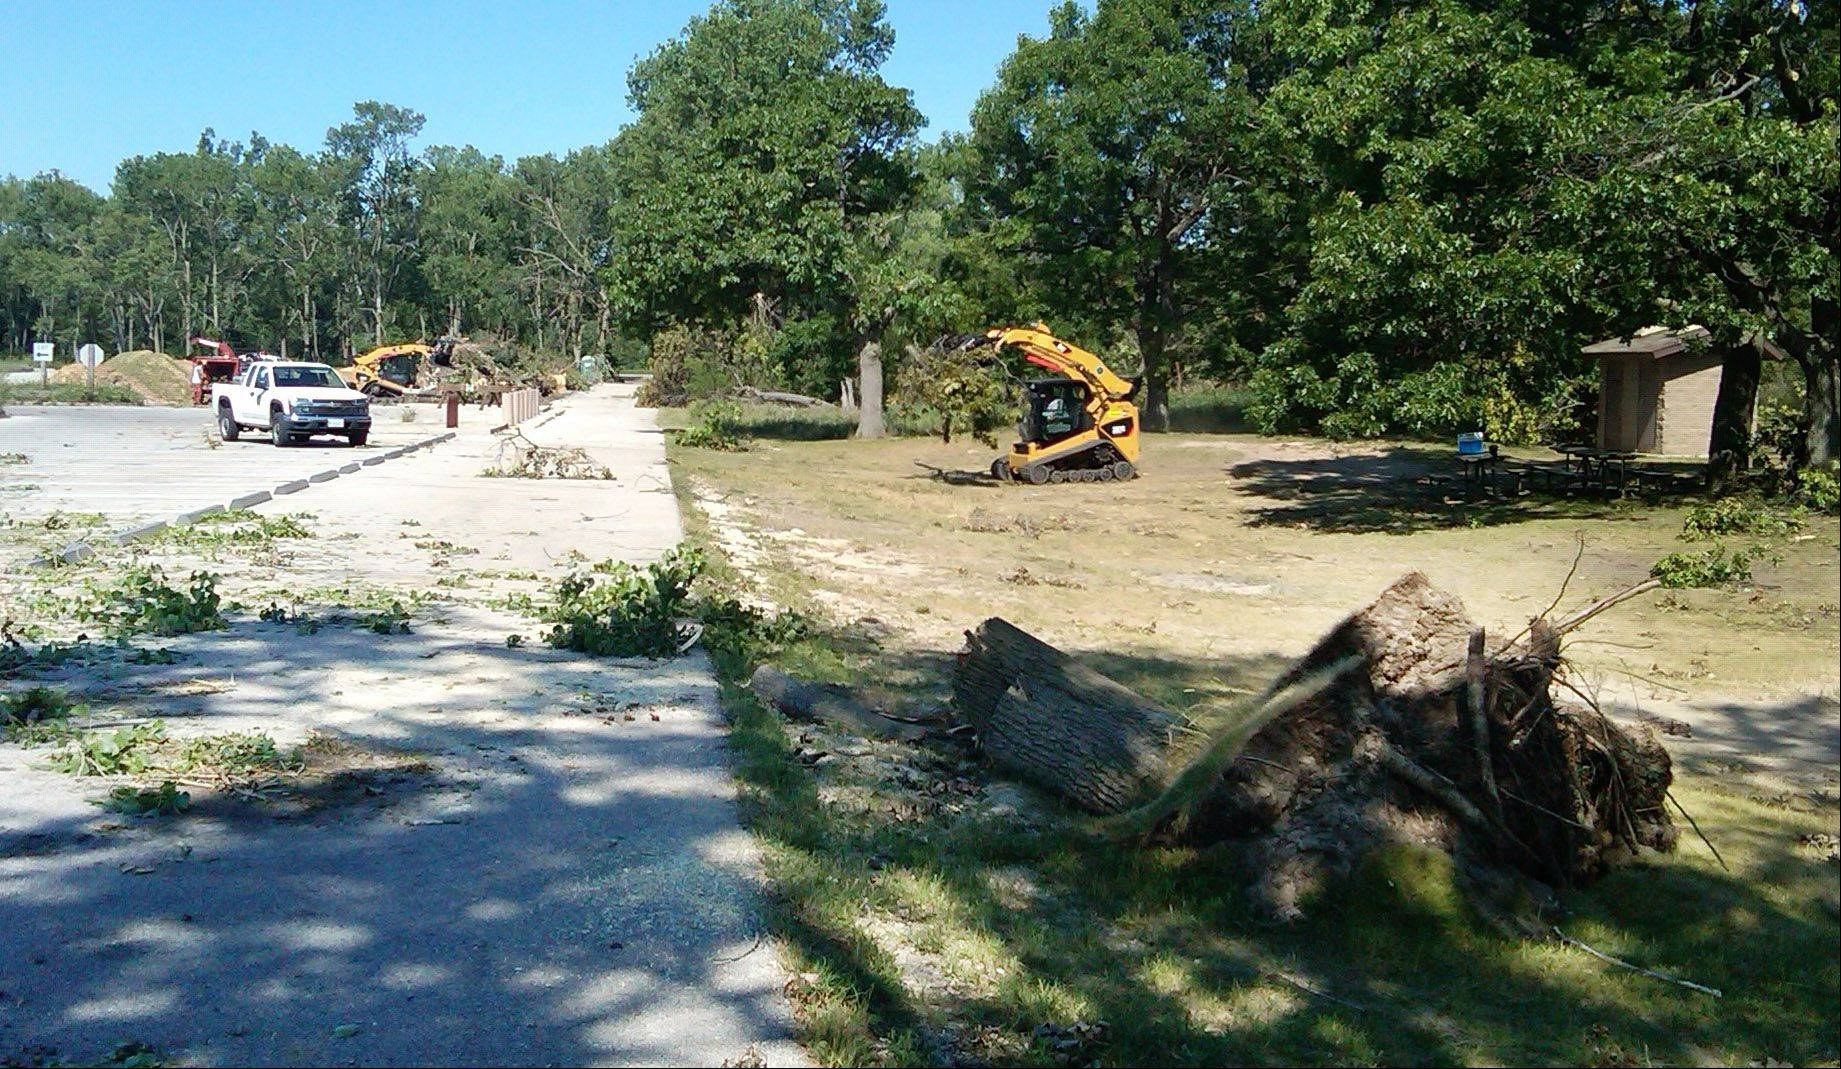 camping at illinois beach state park could resume april 1